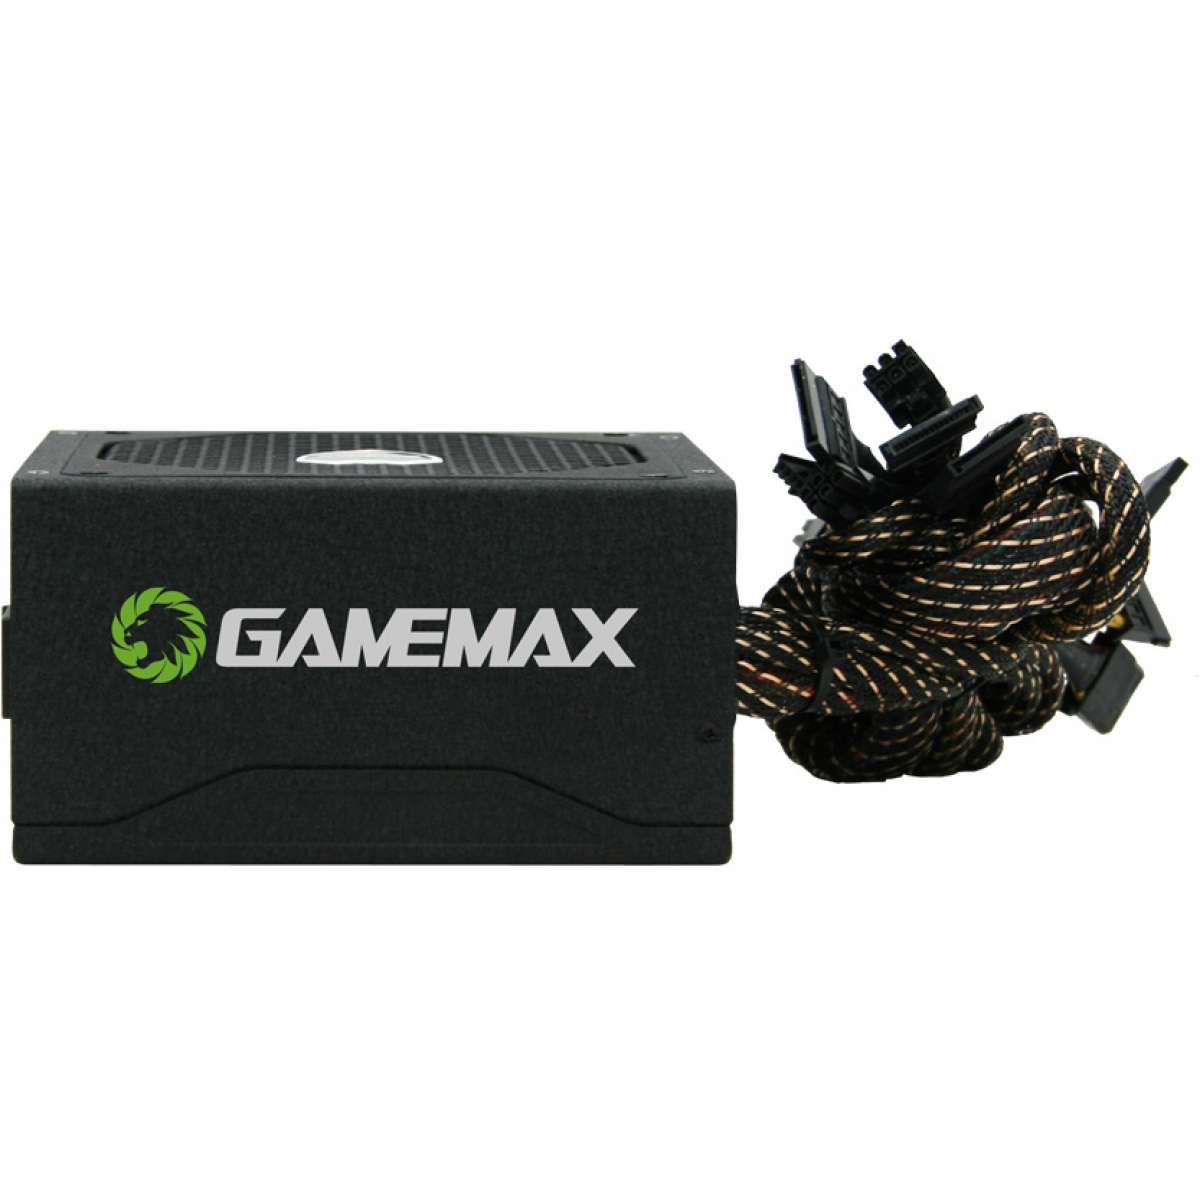 Fonte Gamemax GM800 800W, 80 Plus Bronze, PFC Ativo